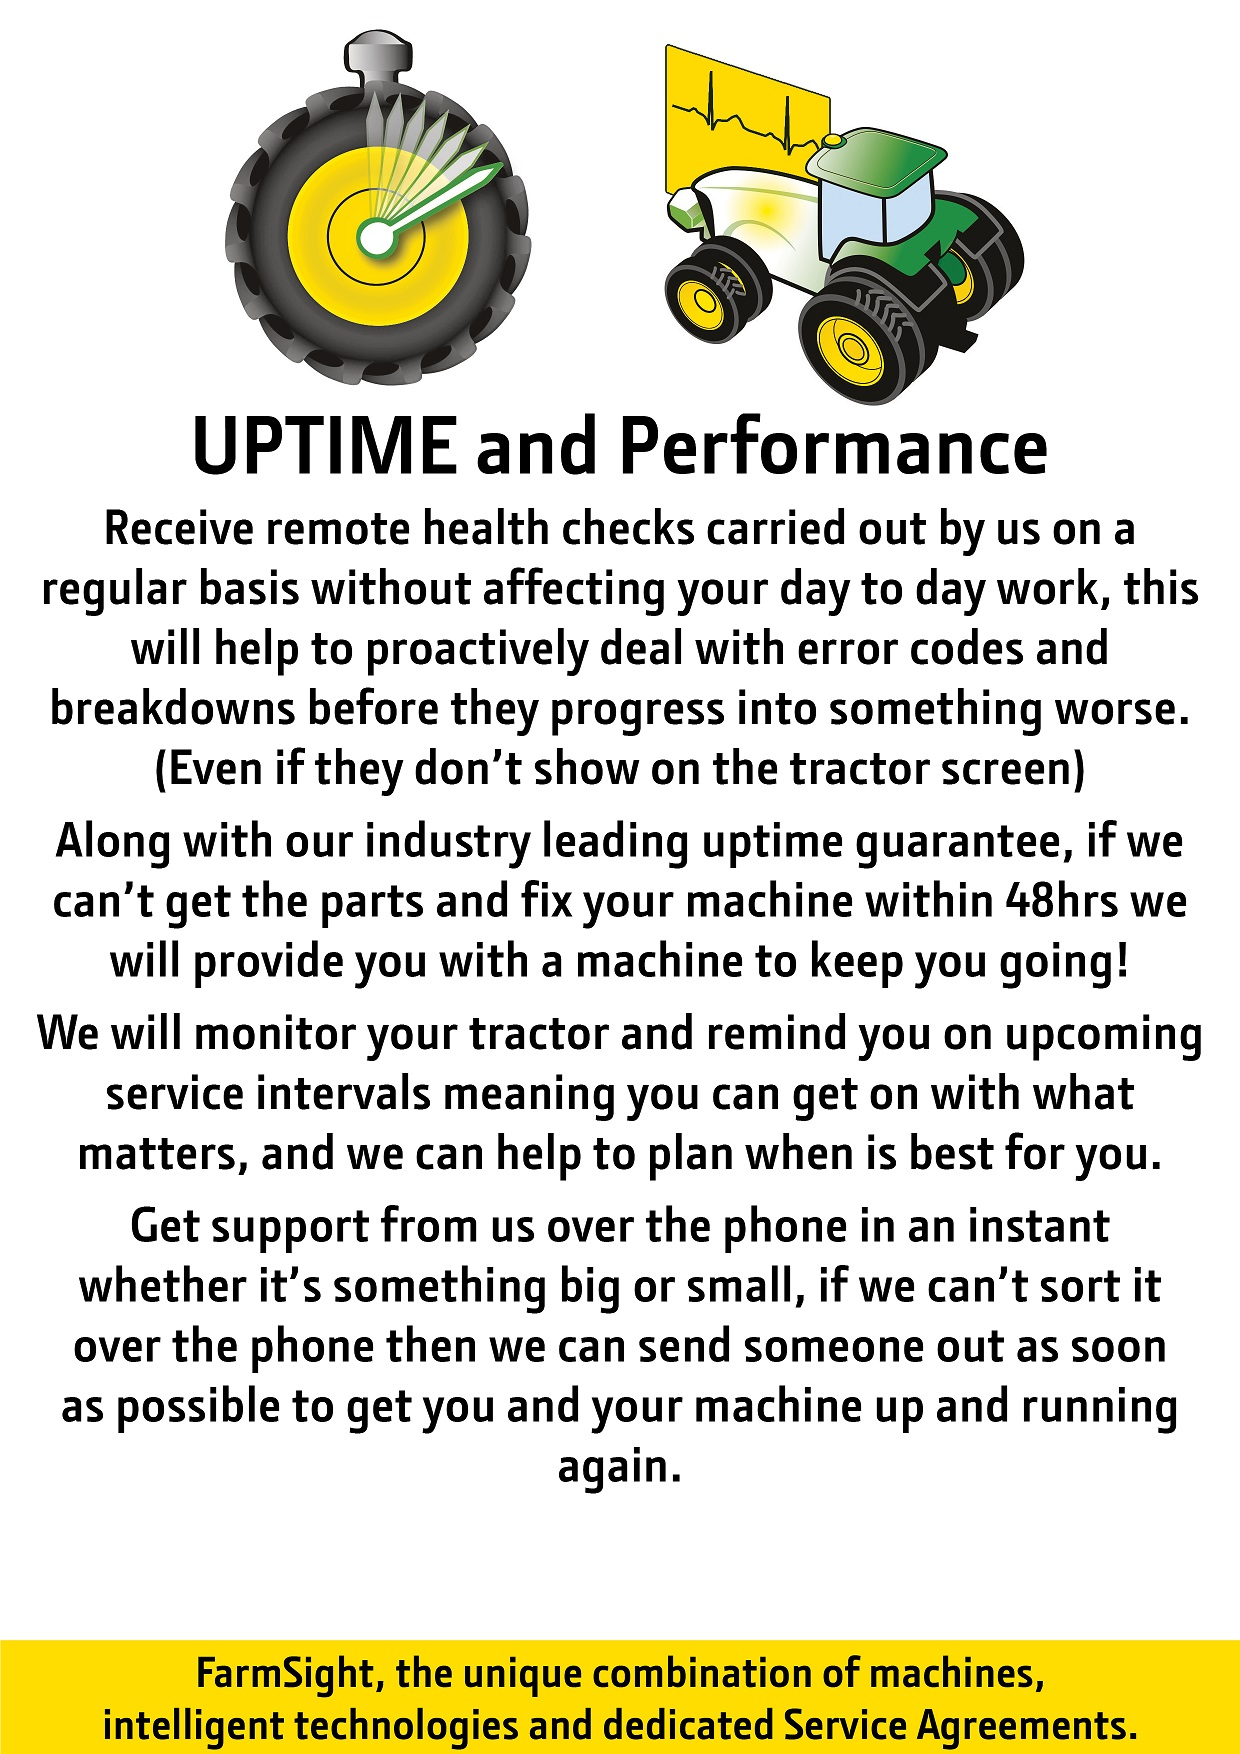 Uptime and Performance